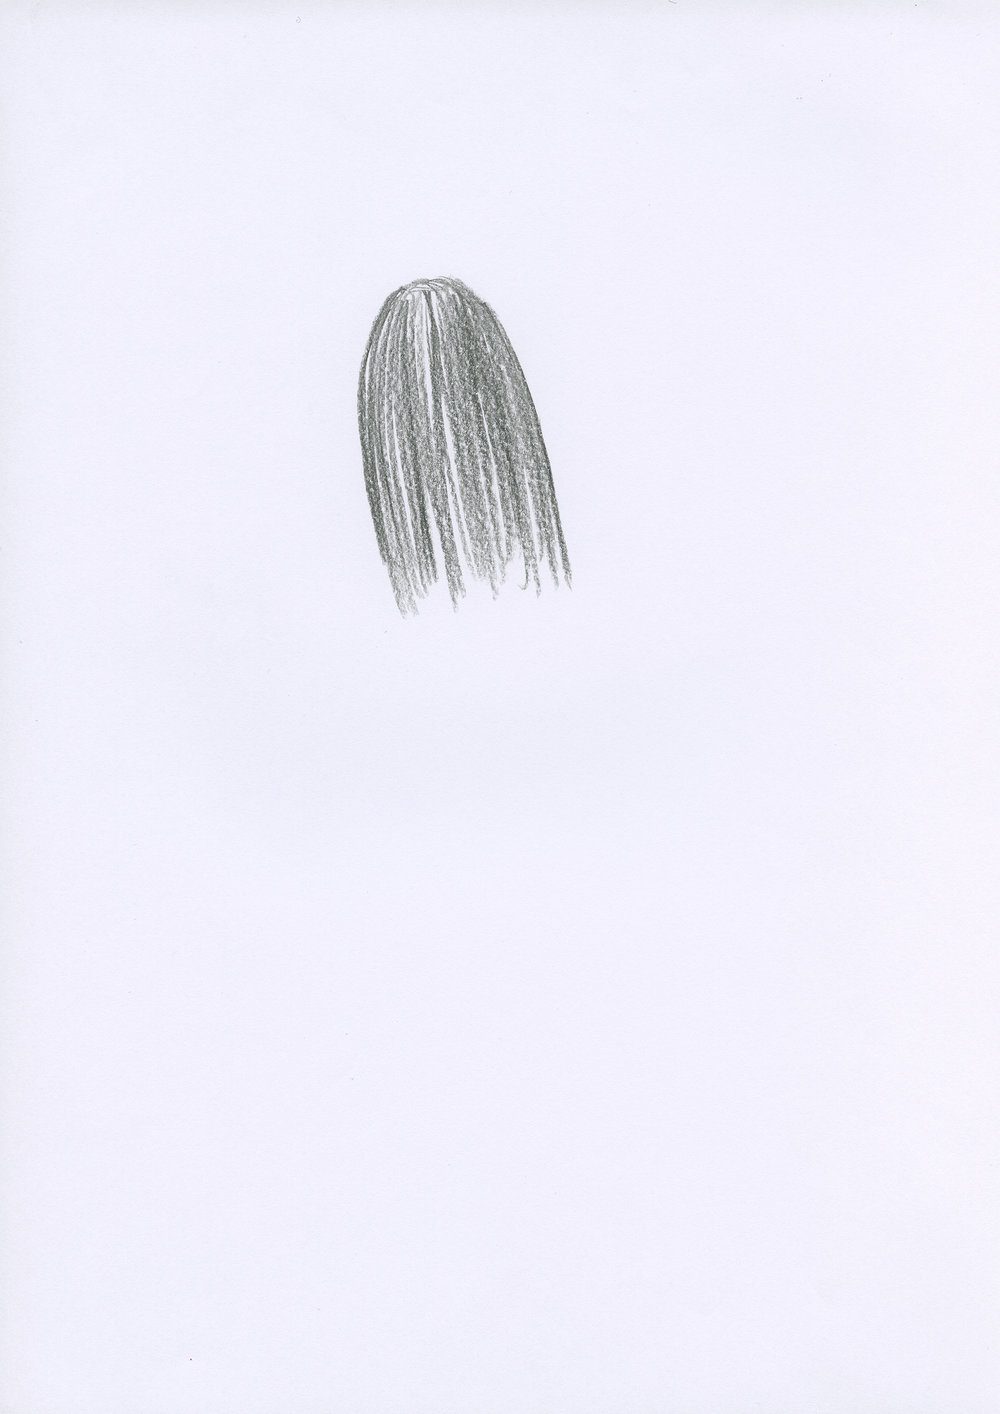 Untitled, 2007, color pencil on paper, 21 x 29,7 cm